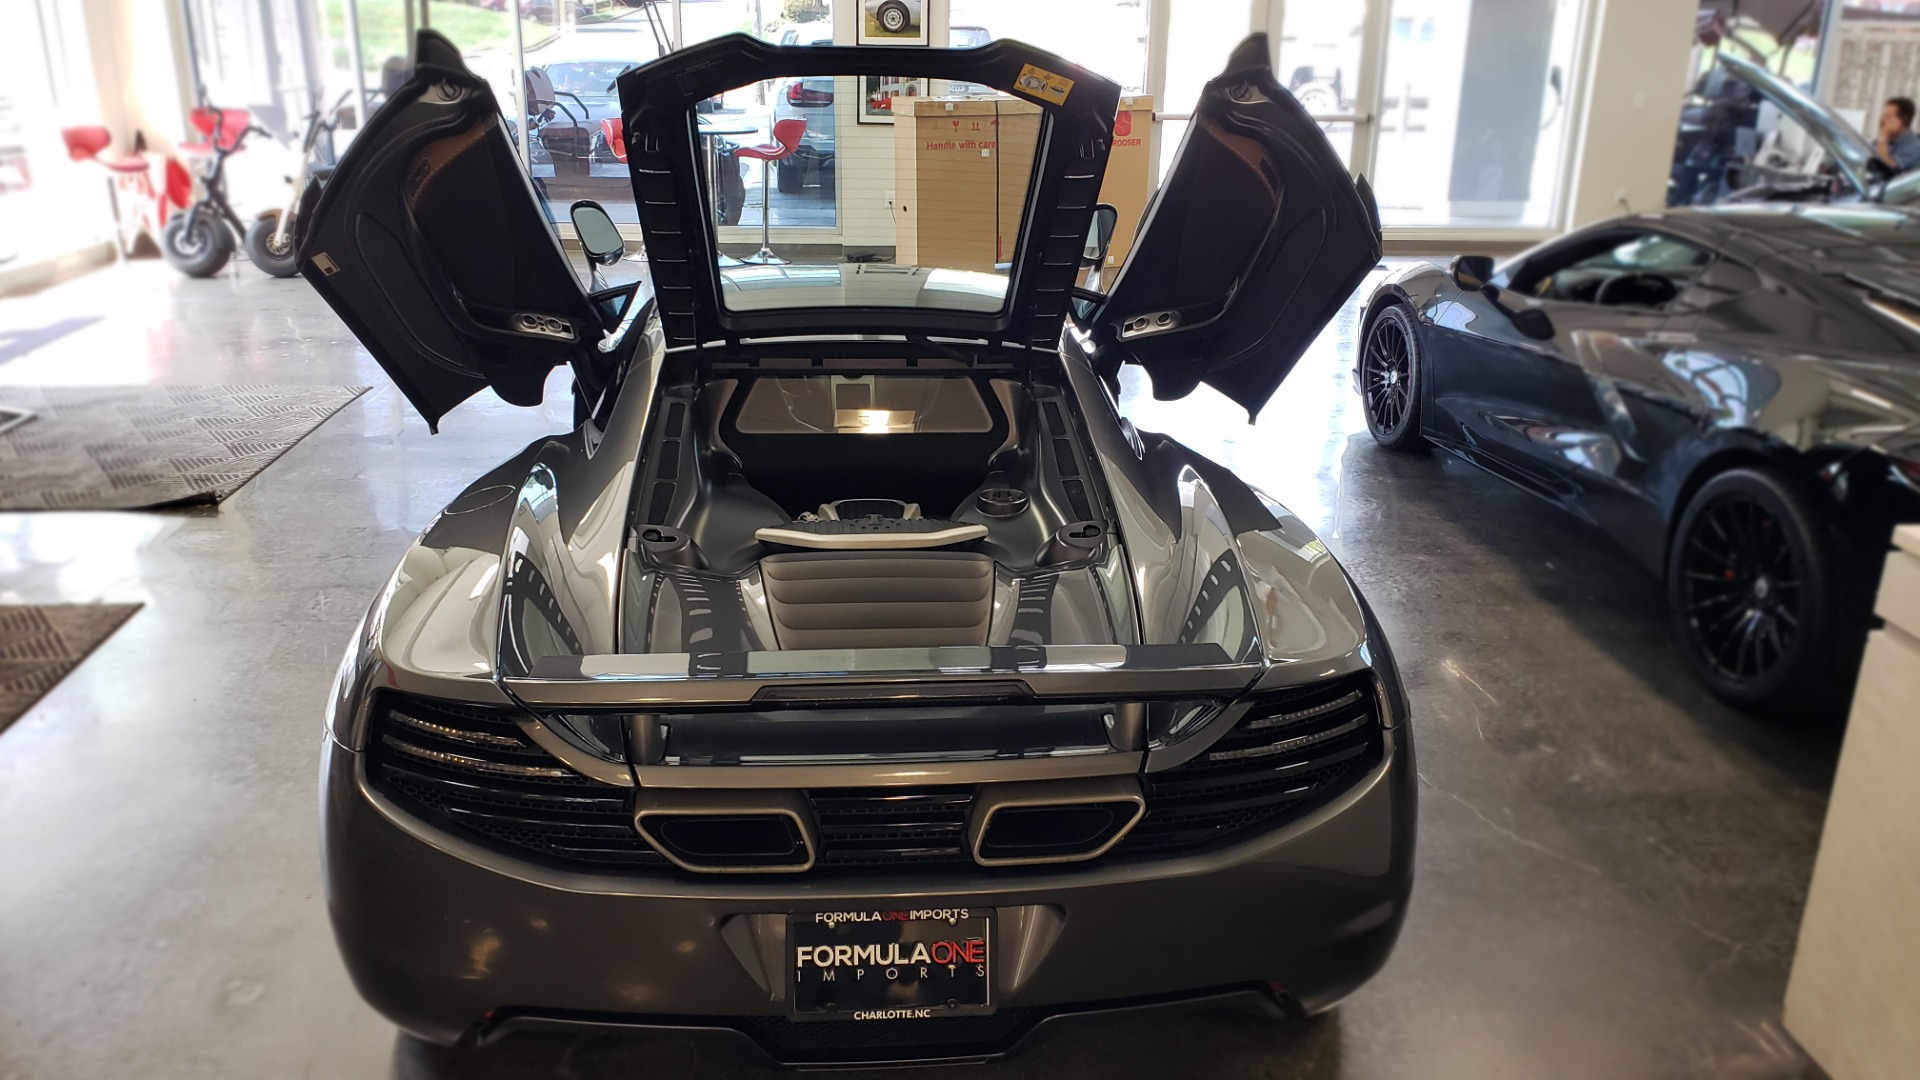 Used 2012 McLaren MP4-12C COUPE / 3.8 L V8 592HP / AUTO / NAV / CCB / LOW MILES for sale $97,999 at Formula Imports in Charlotte NC 28227 86